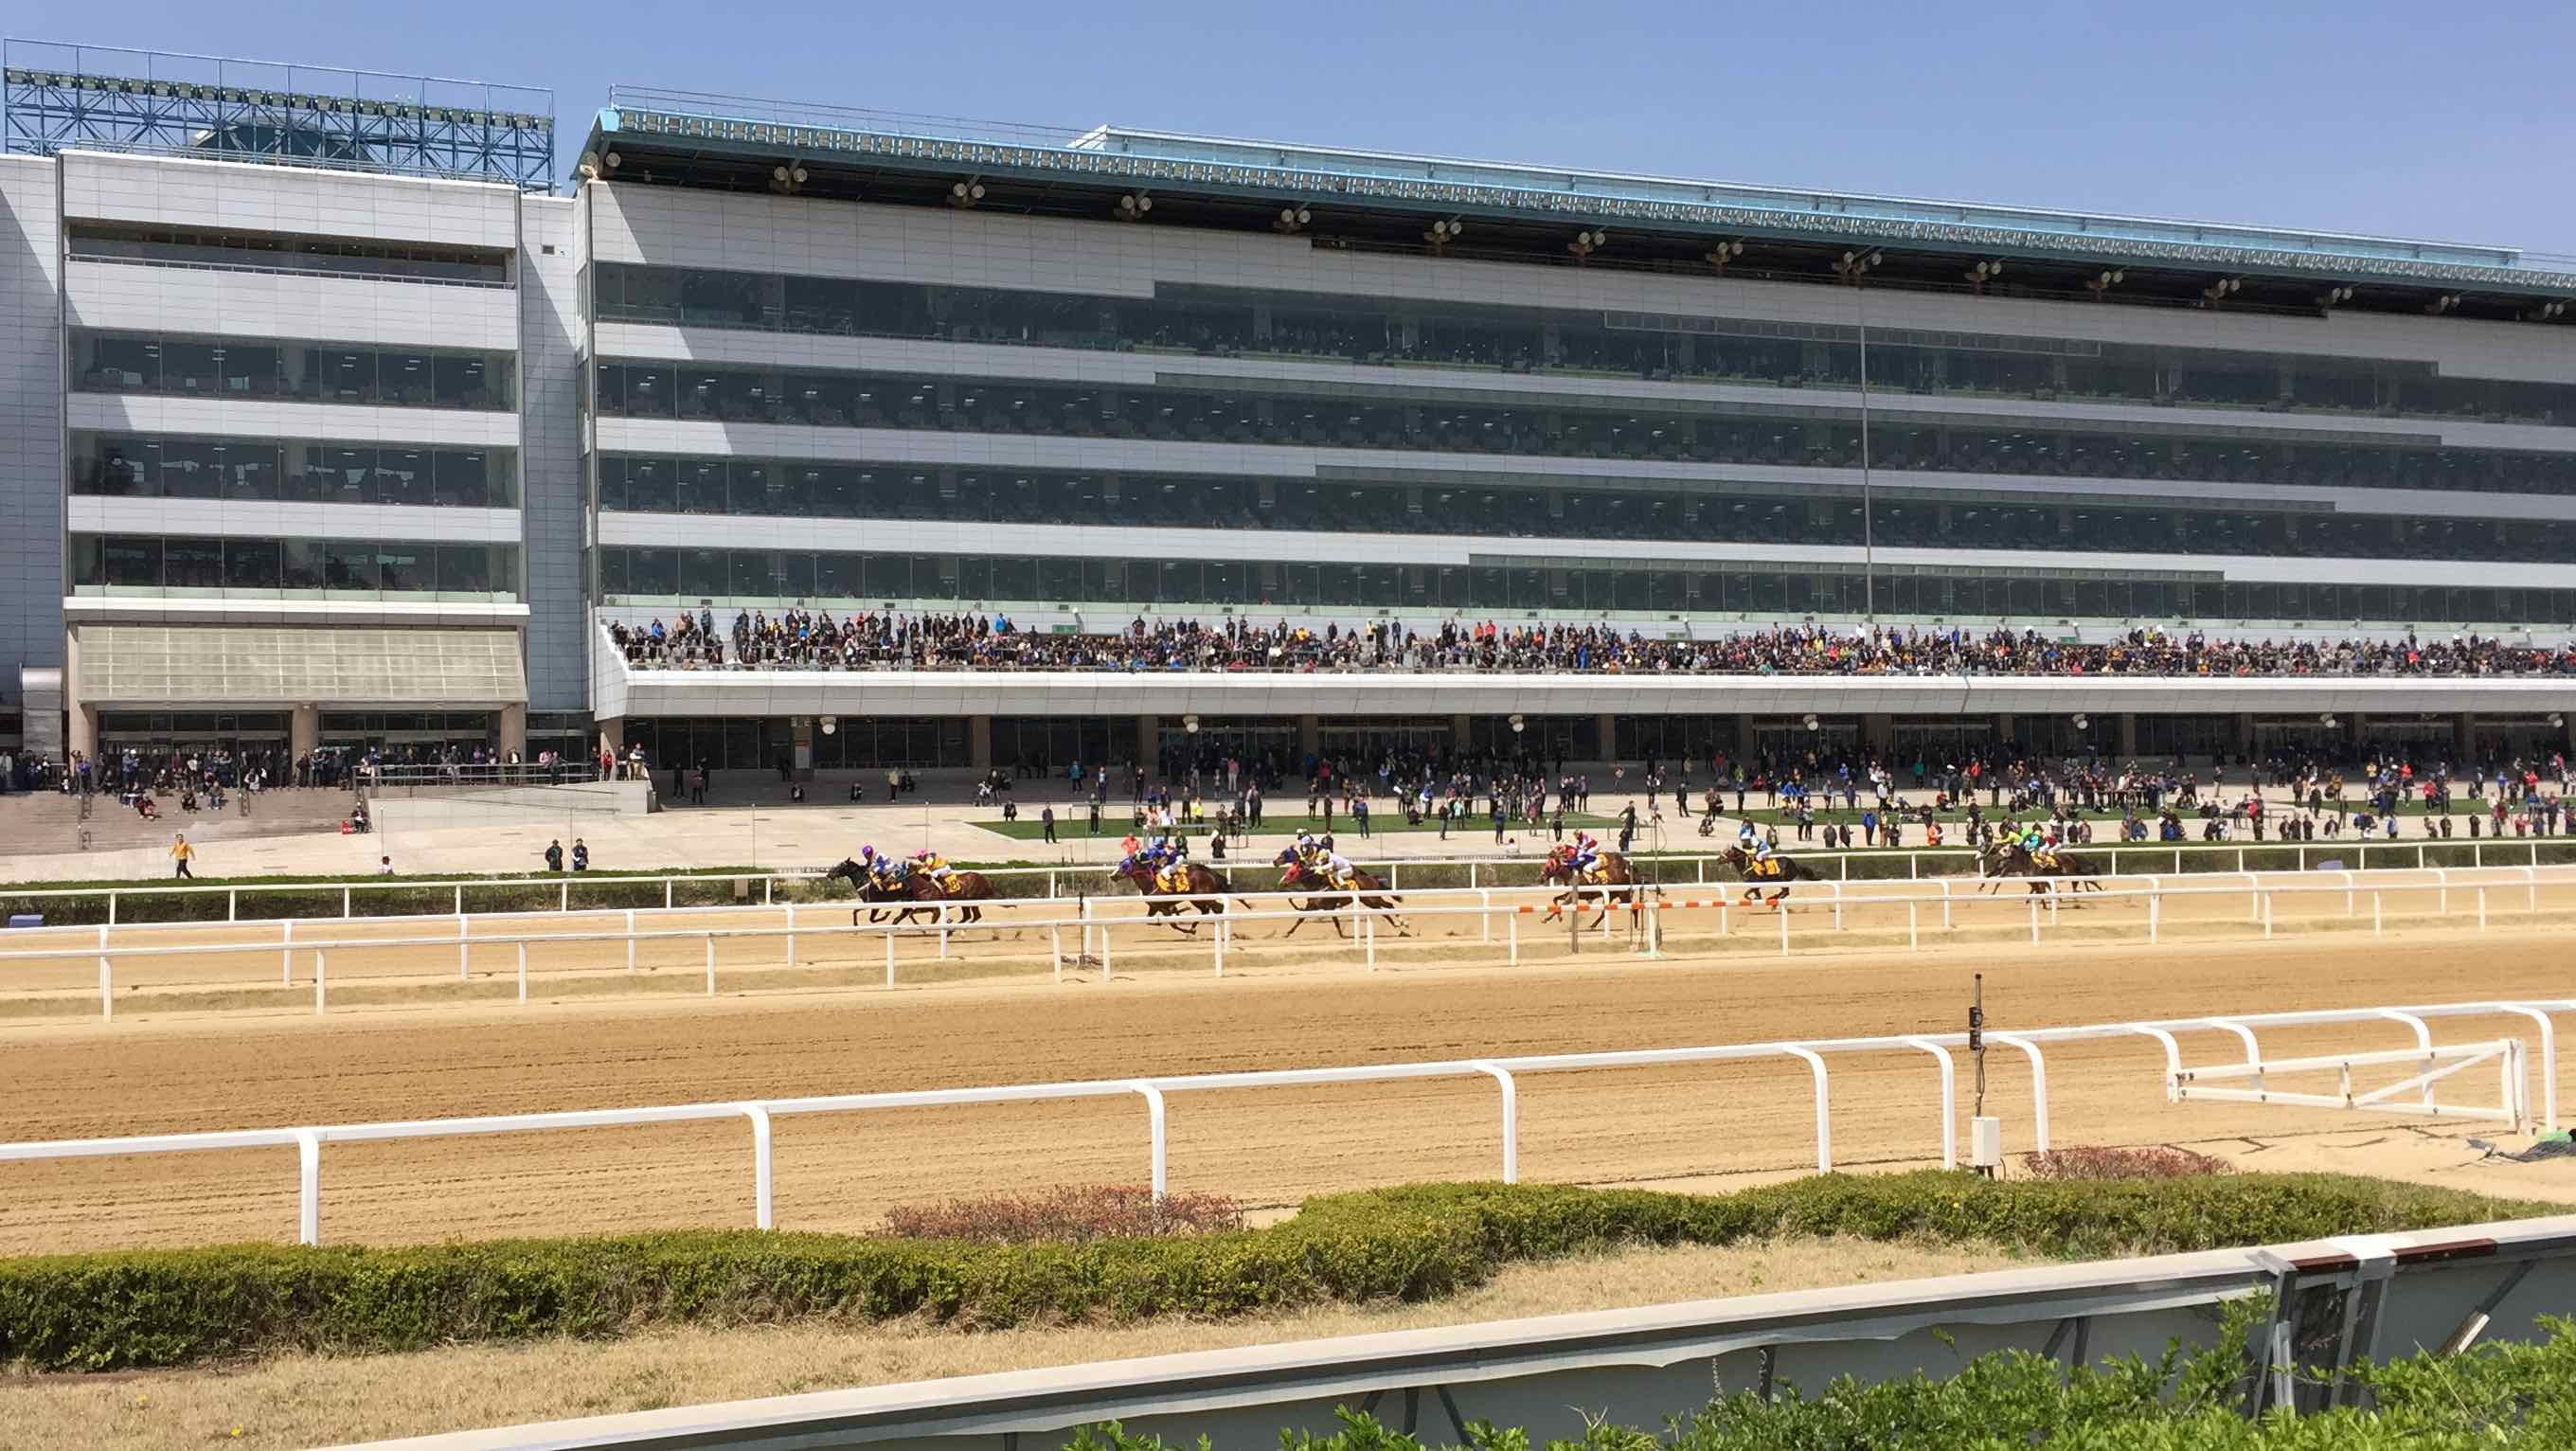 Horses running at the track in Seoul